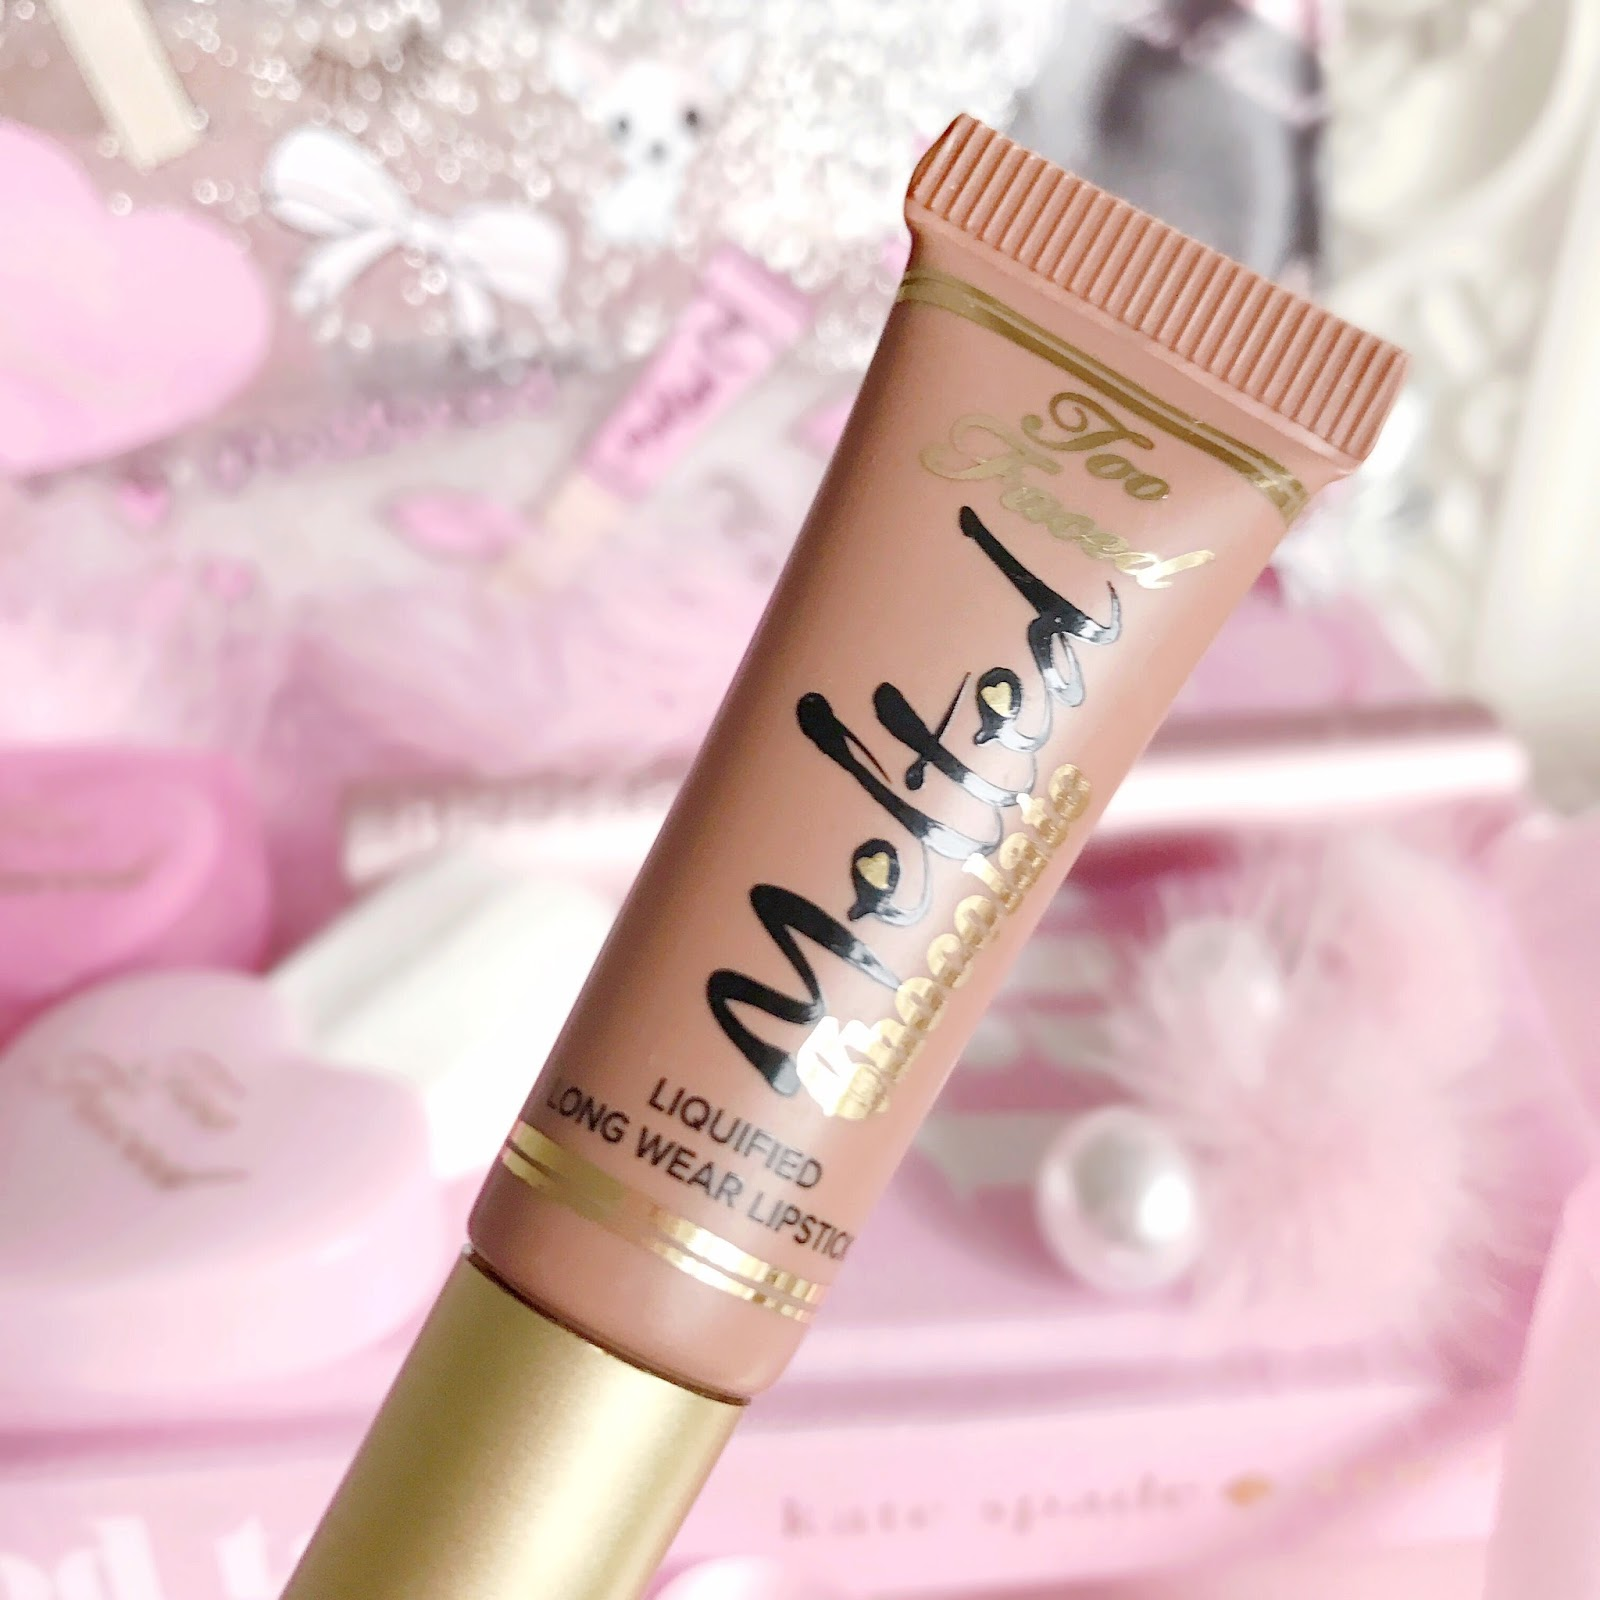 Melted Chocolate Lipstick | Too Faced X Skinnydip